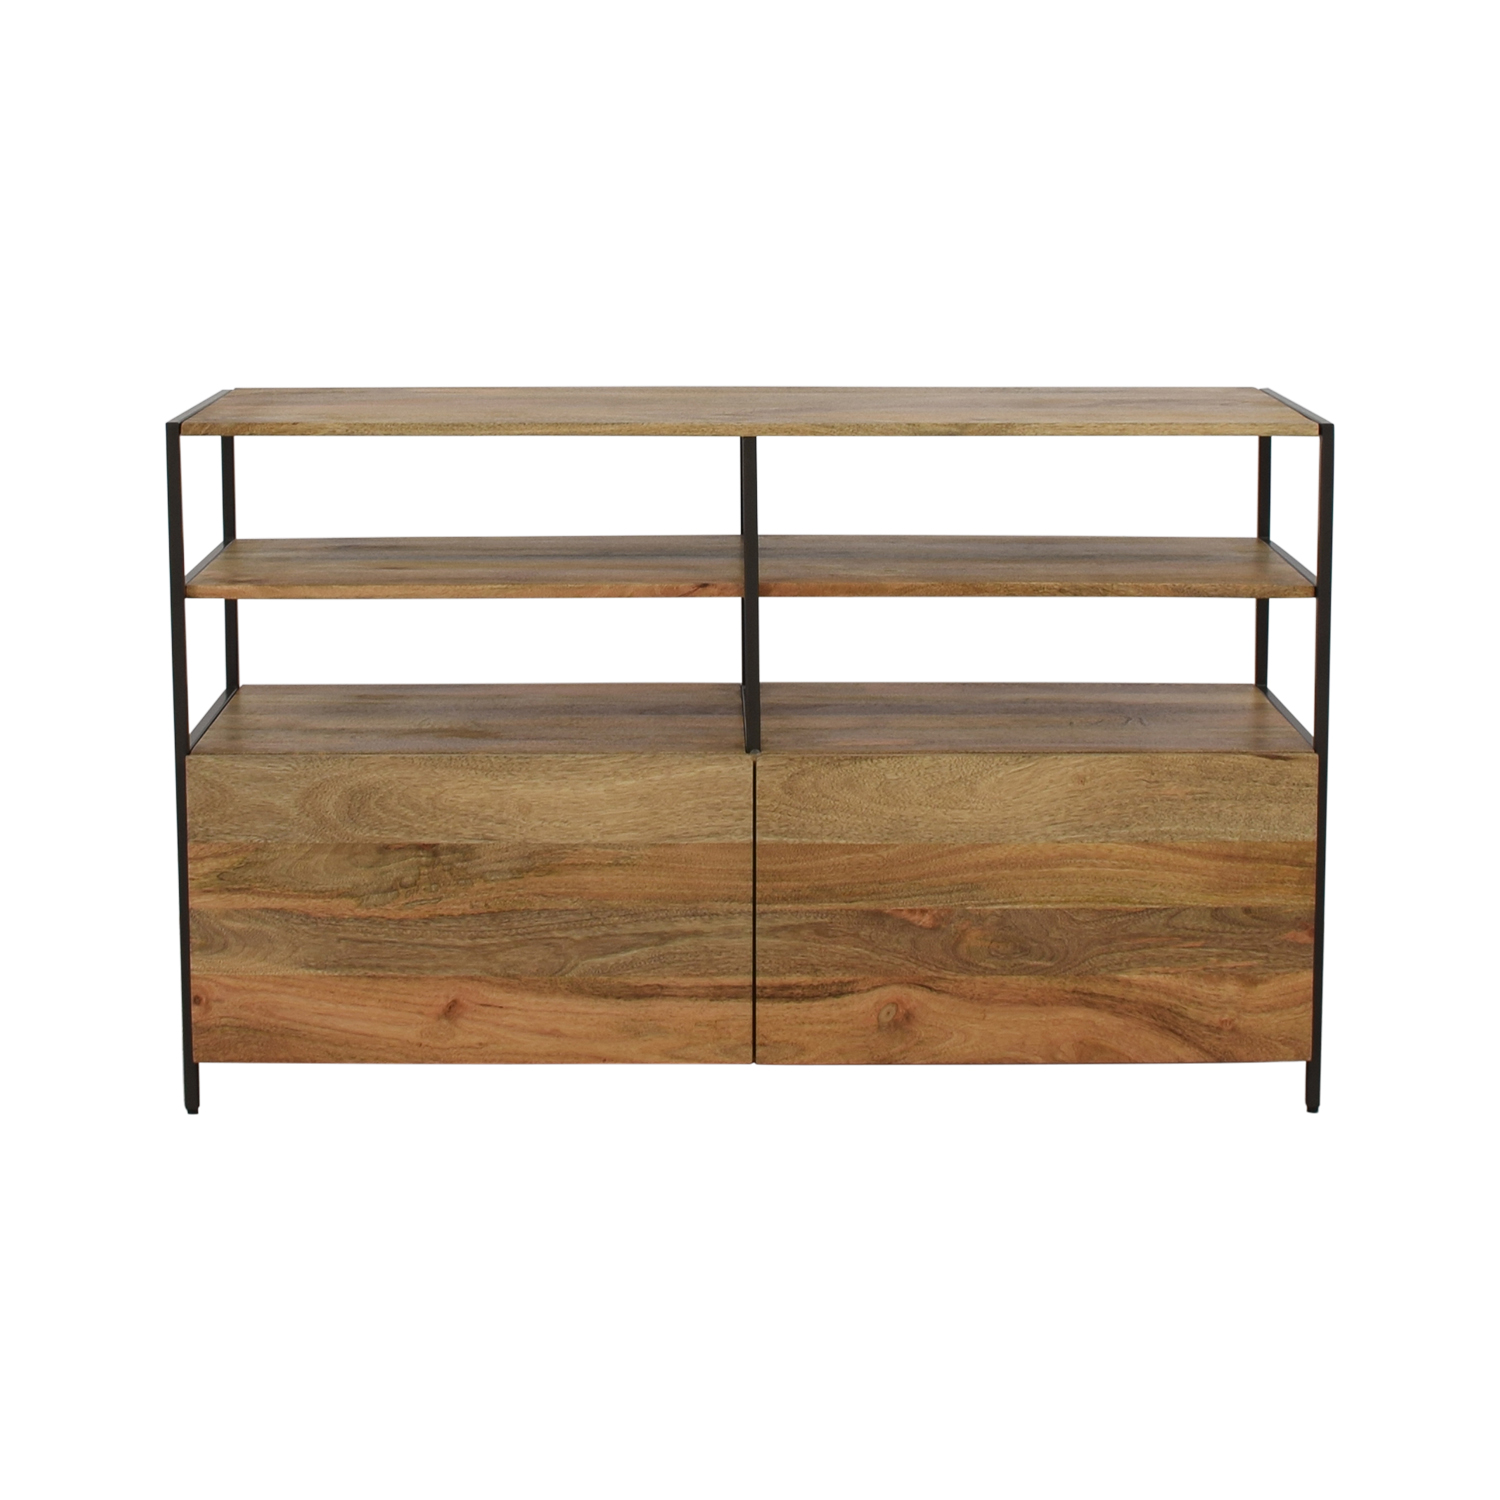 West Elm West Elm Industrial Modular Media Console price